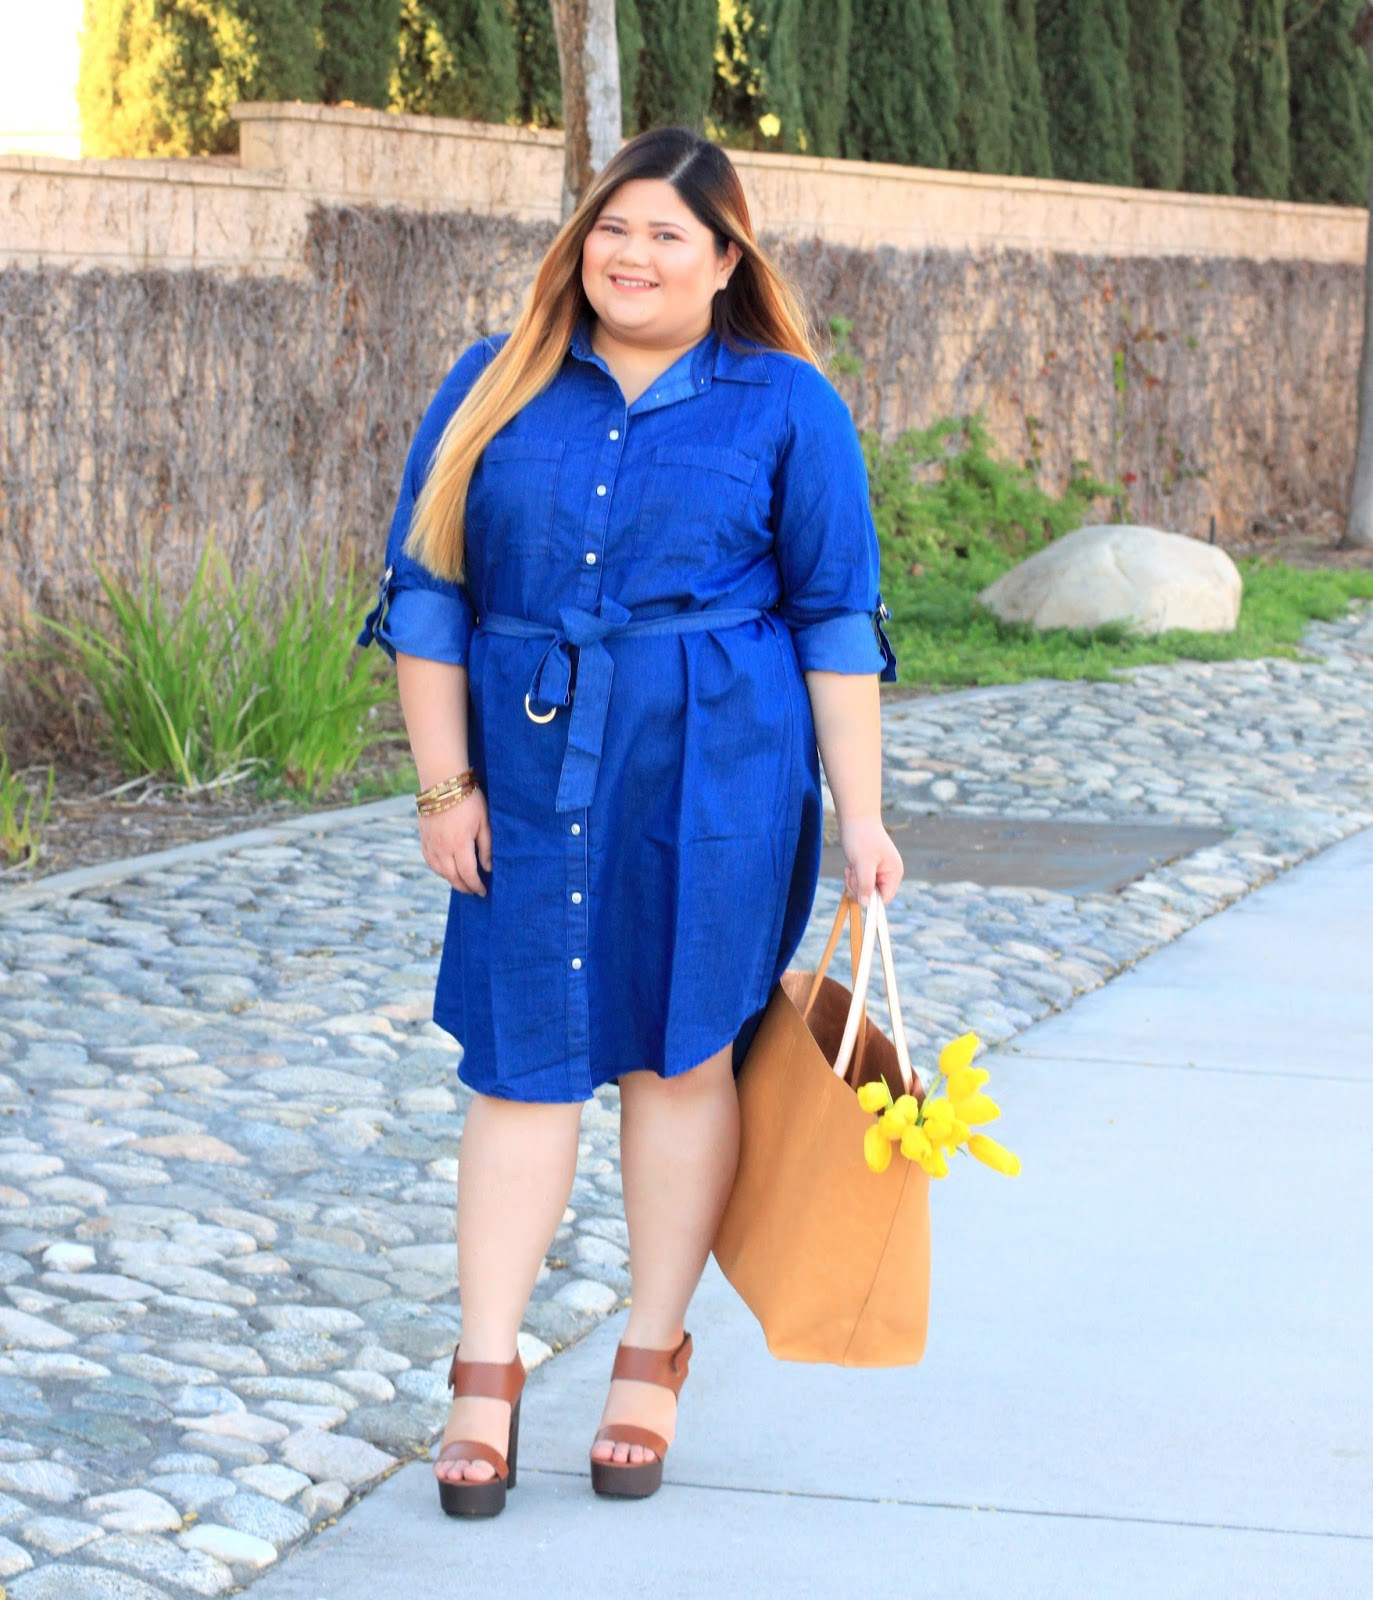 Curveella: You can never go wrong with a denim shirt dress